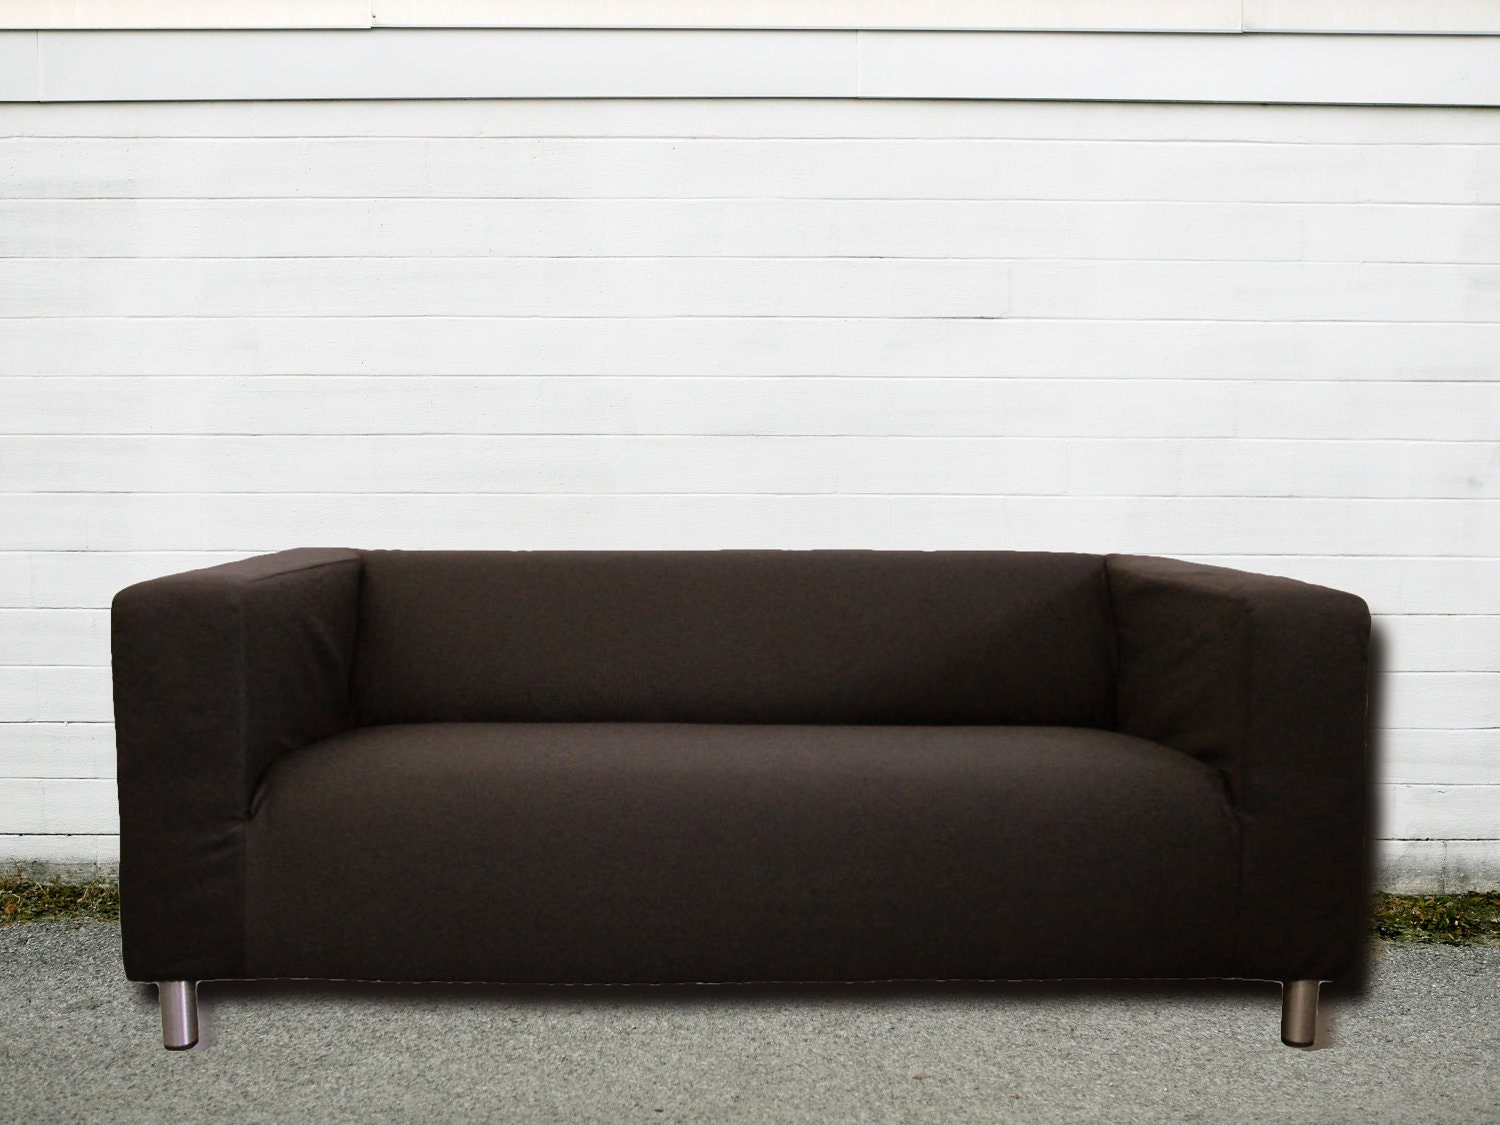 Custom ikea klippan loveseat slipcover in espresso brown twill - Klippan sofa ikea ...